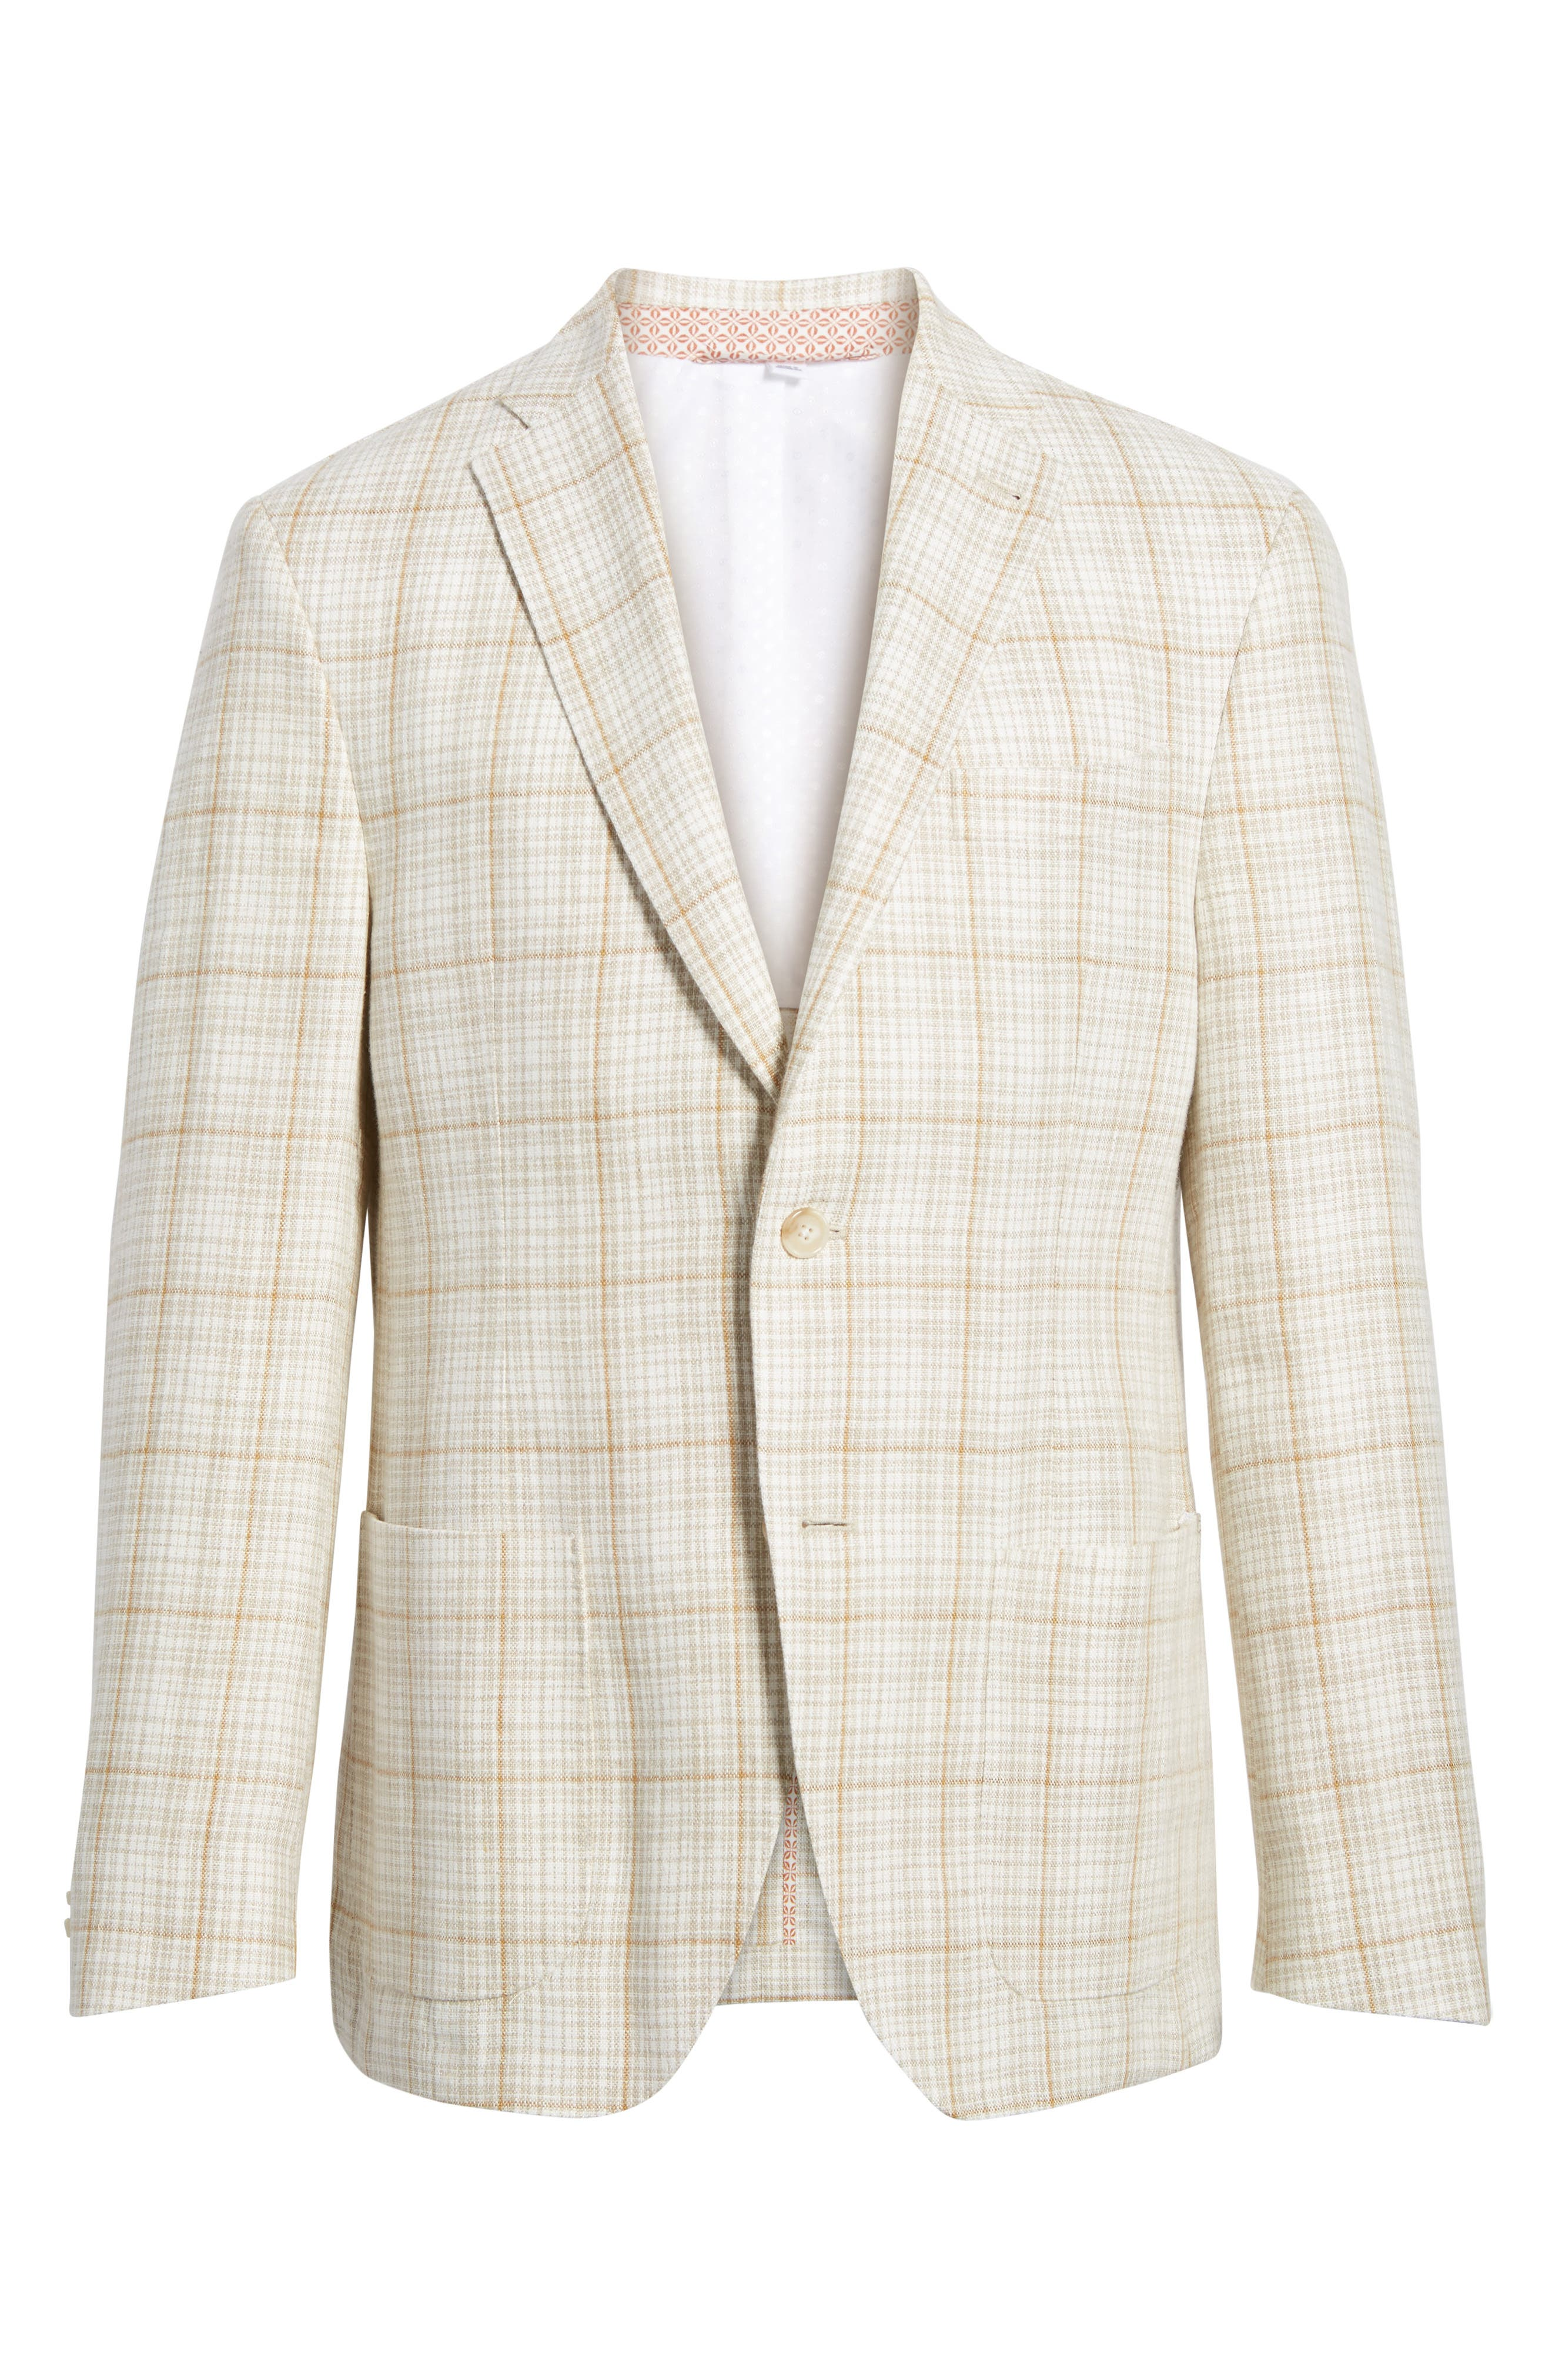 Trent Trim Fit Plaid Linen Sport Coat,                             Alternate thumbnail 6, color,                             Light Cream